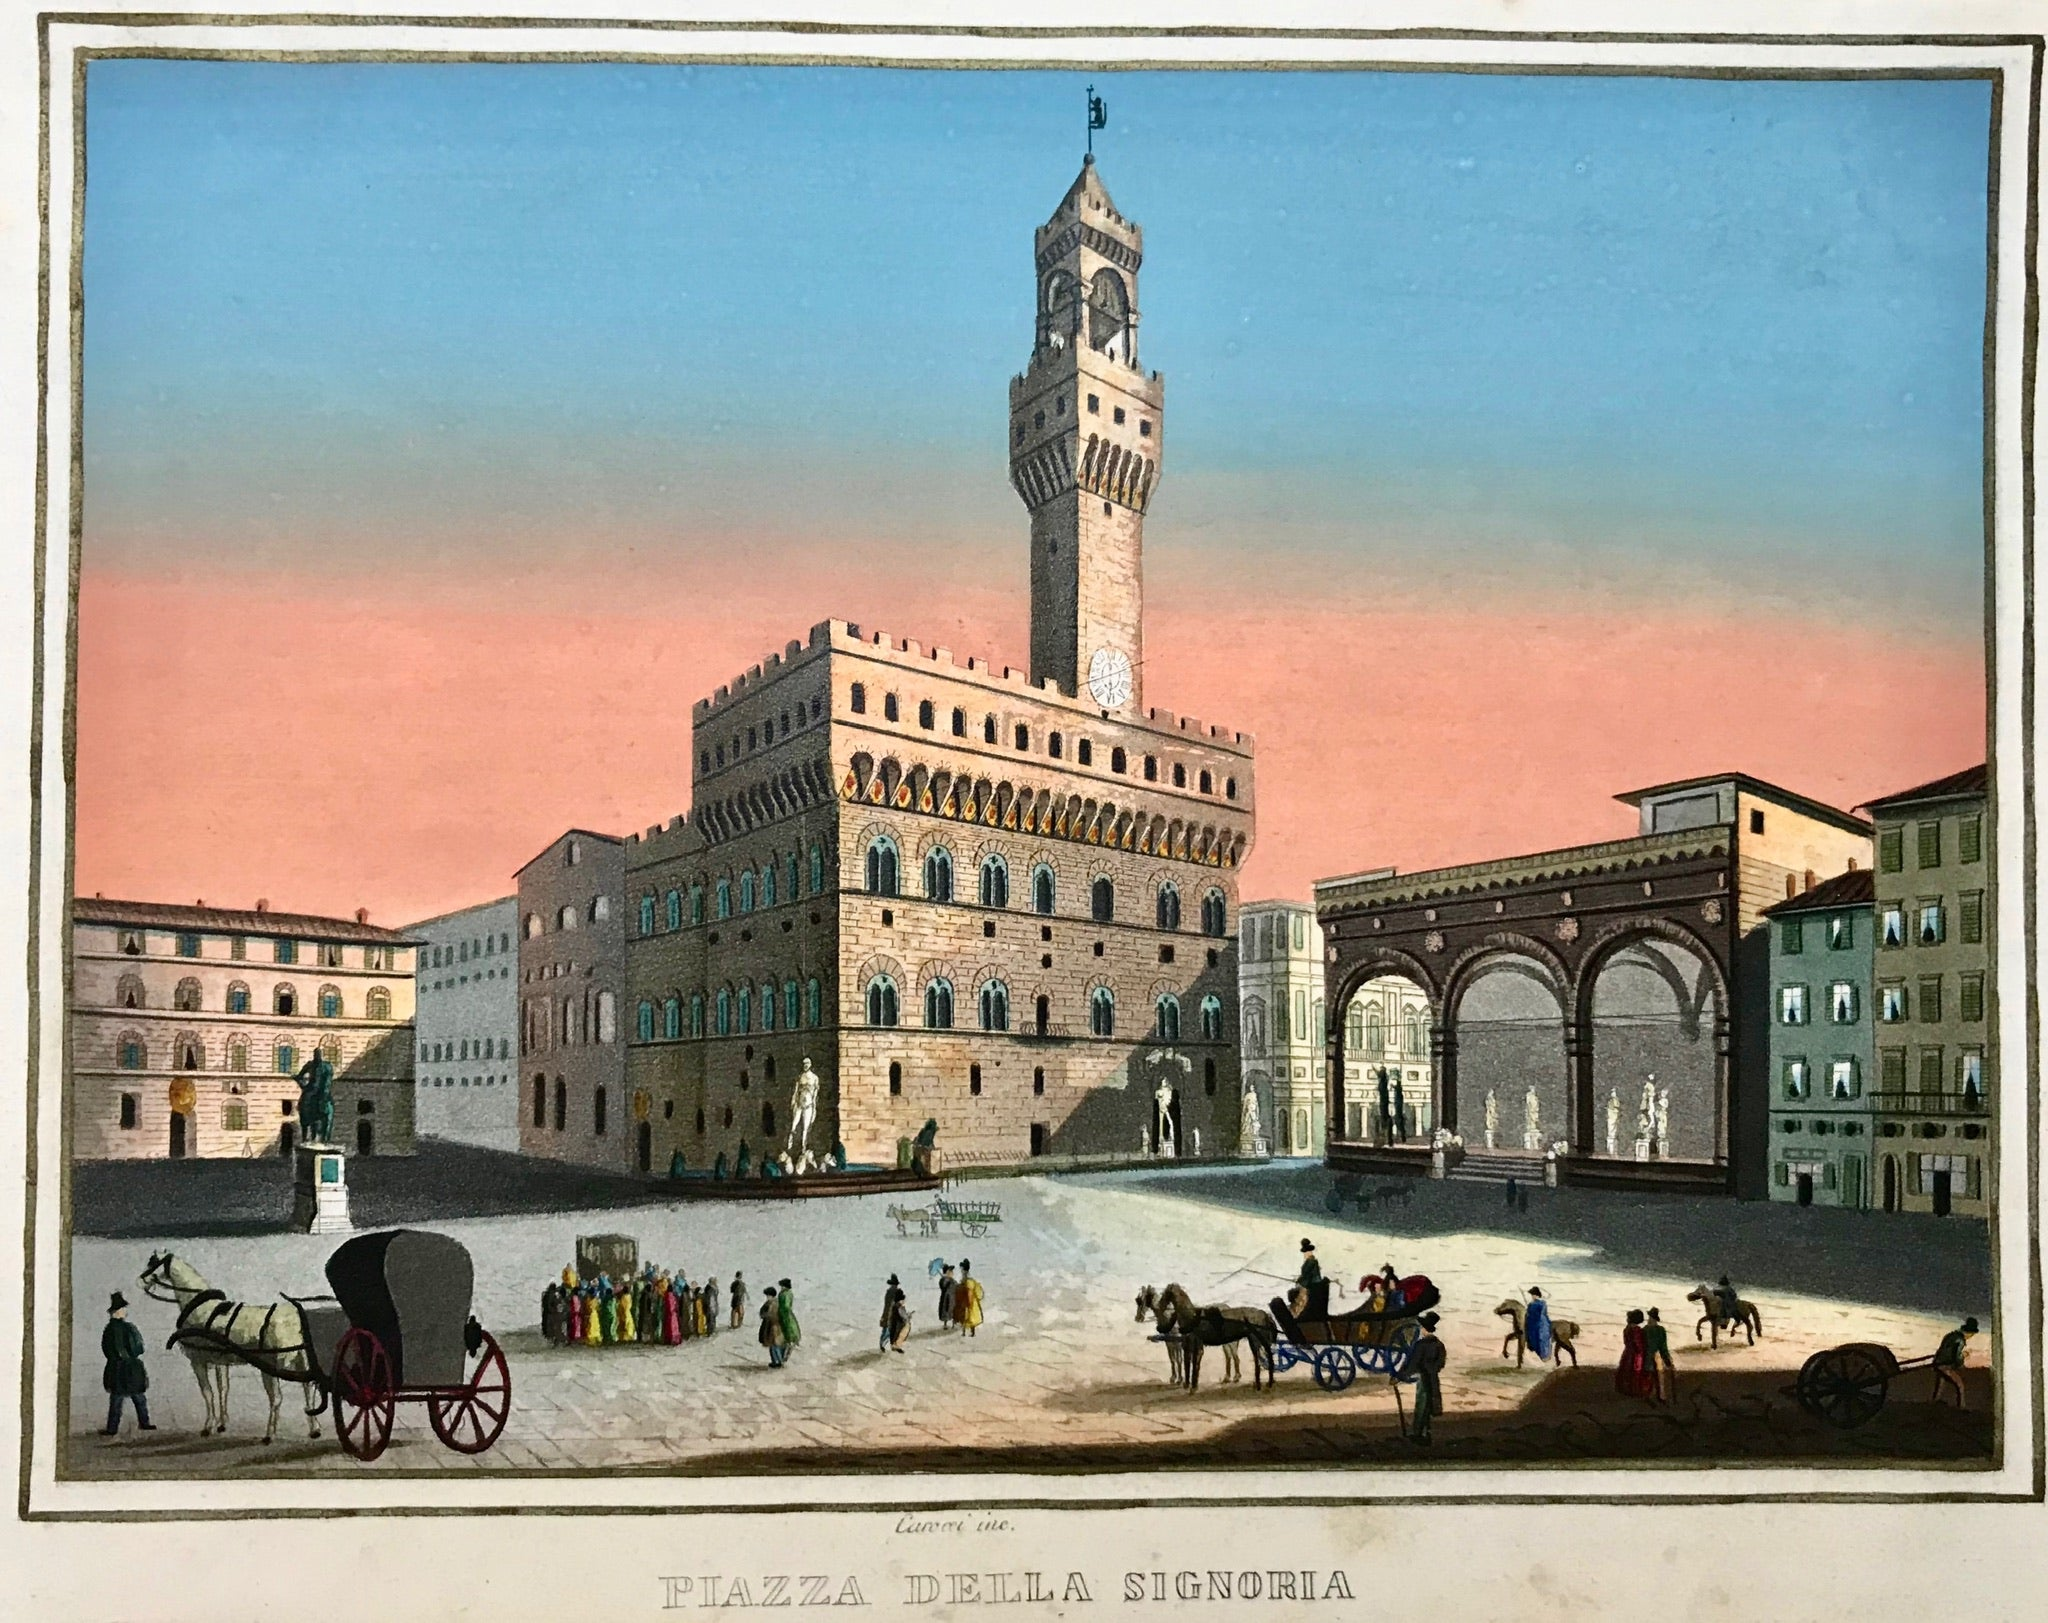 """Piazza della Signorina"".  Aquatinta by Guido Carrocci. Superb gouache hand coloring. Ca. 1810. From a series of 31 views by Carrocci."